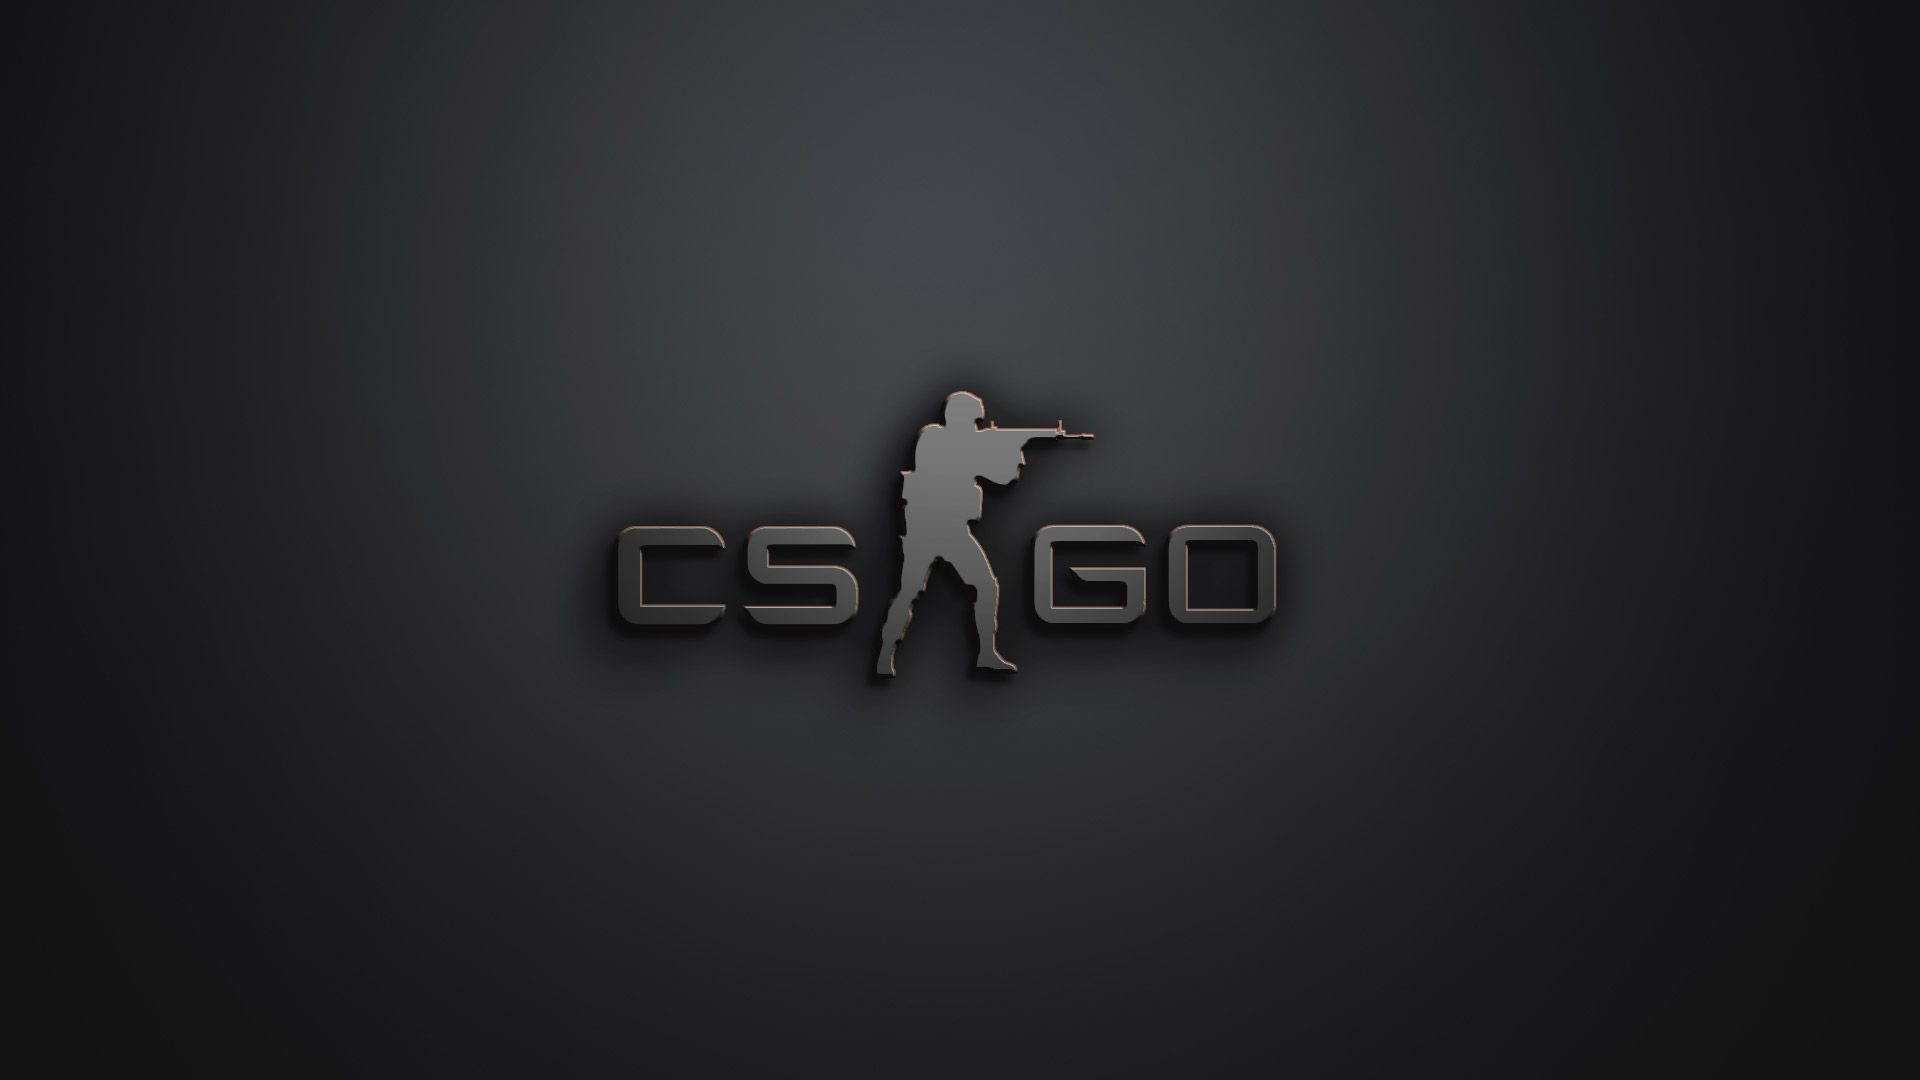 CS GO Wallpapers - Top Free CS GO Backgrounds - WallpaperAccess